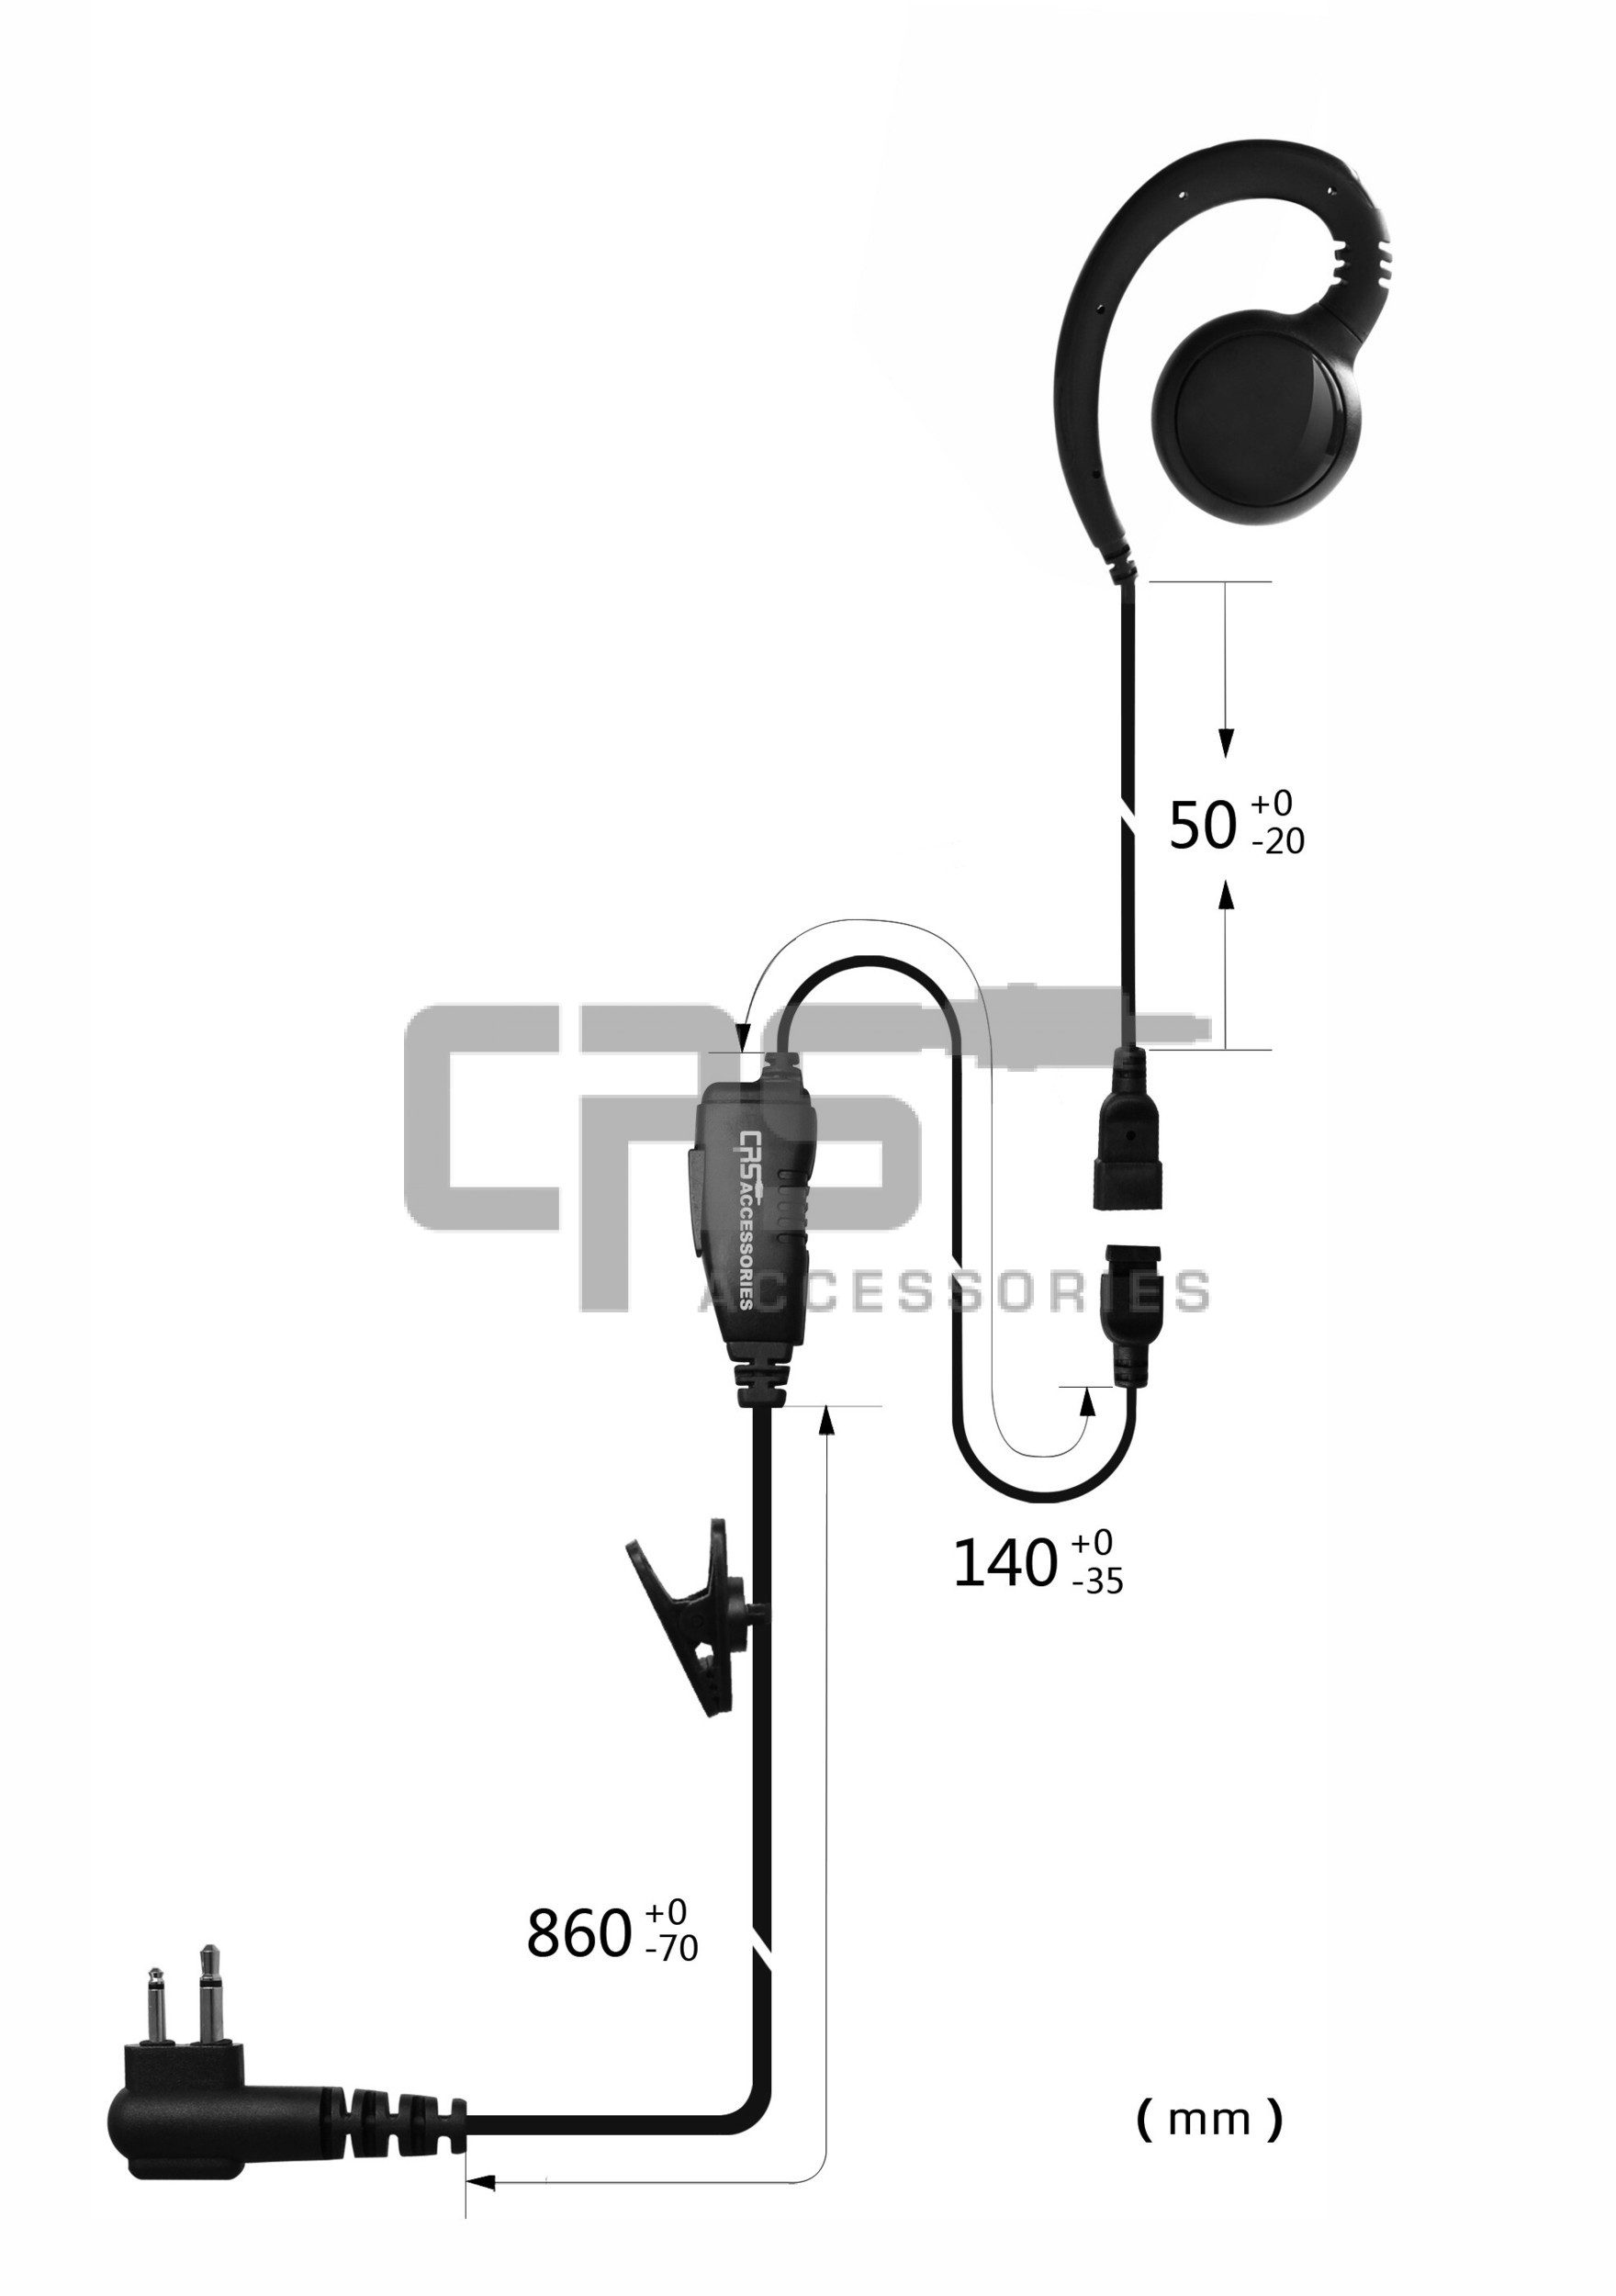 CRS 1 Wire Ghook Earpiece with Inline PTT/MIC to suit Hytera PD-700 Series  Multipin